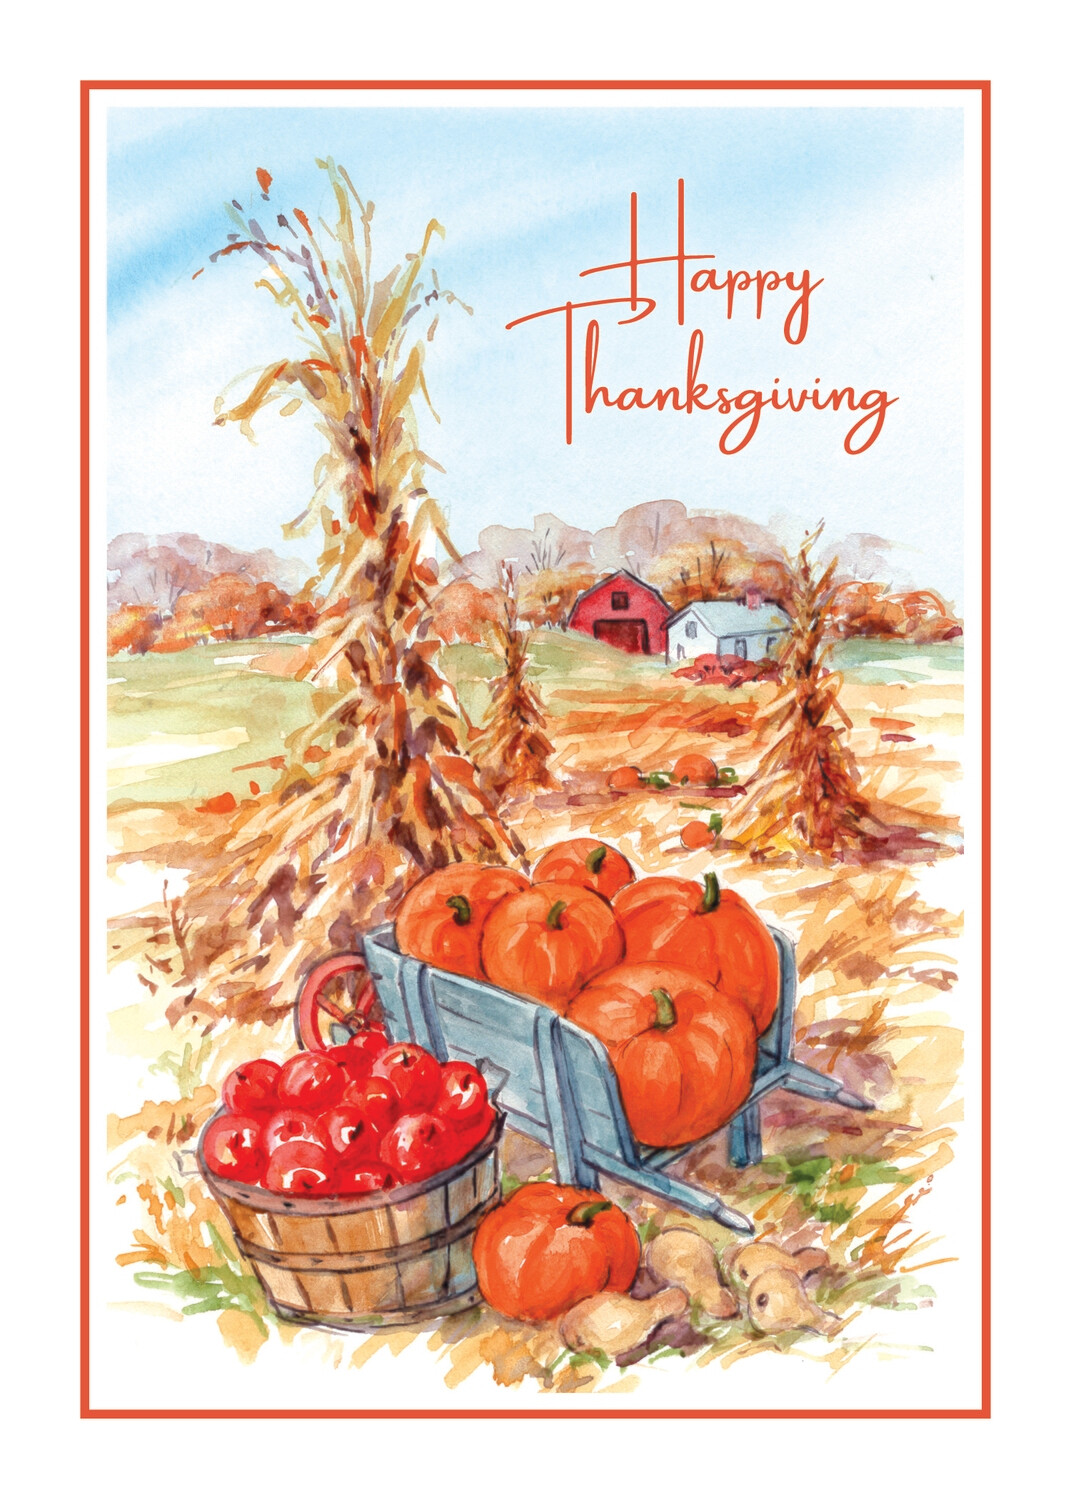 FRS 626 / 7974 Thanksgiving Card